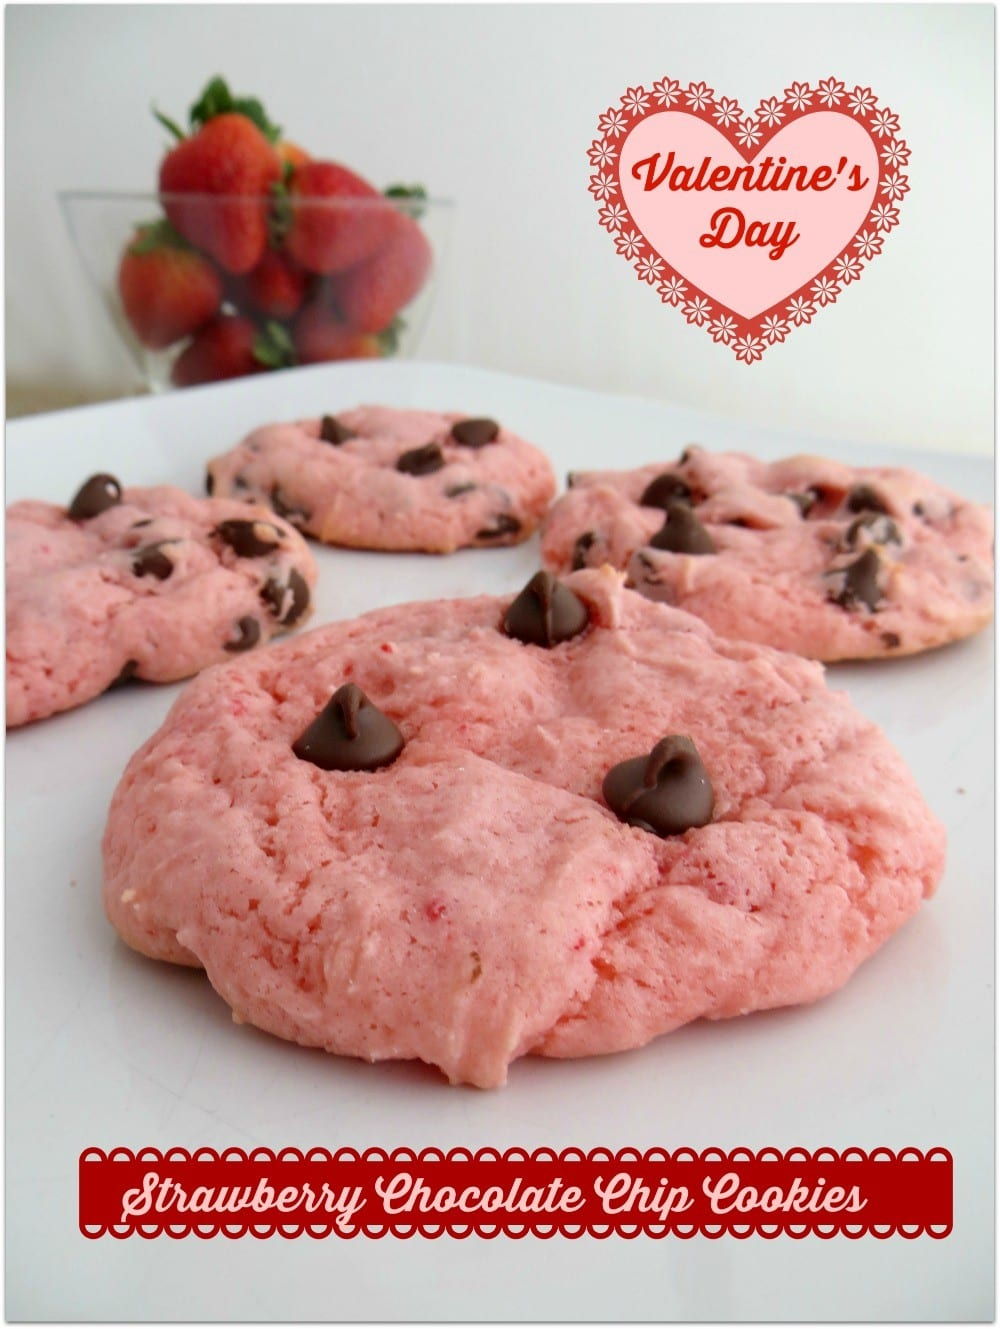 Strawberry Chocolate Chip Cookies Recipe